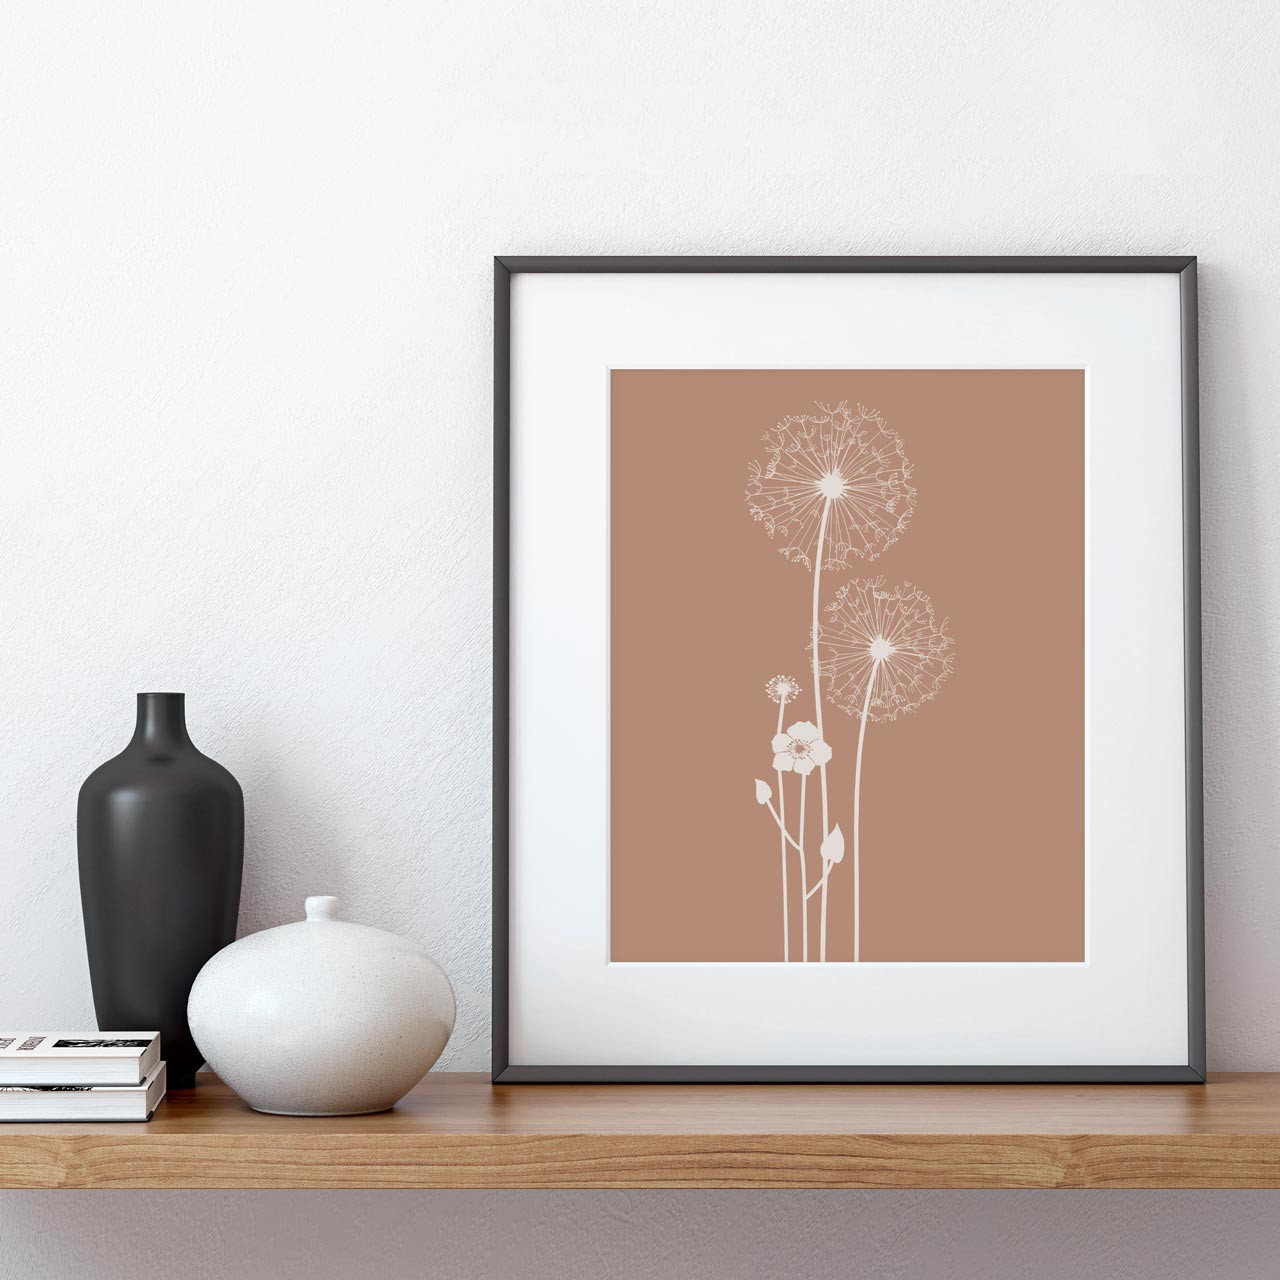 'Dandelions' Art Print from The Printed Home